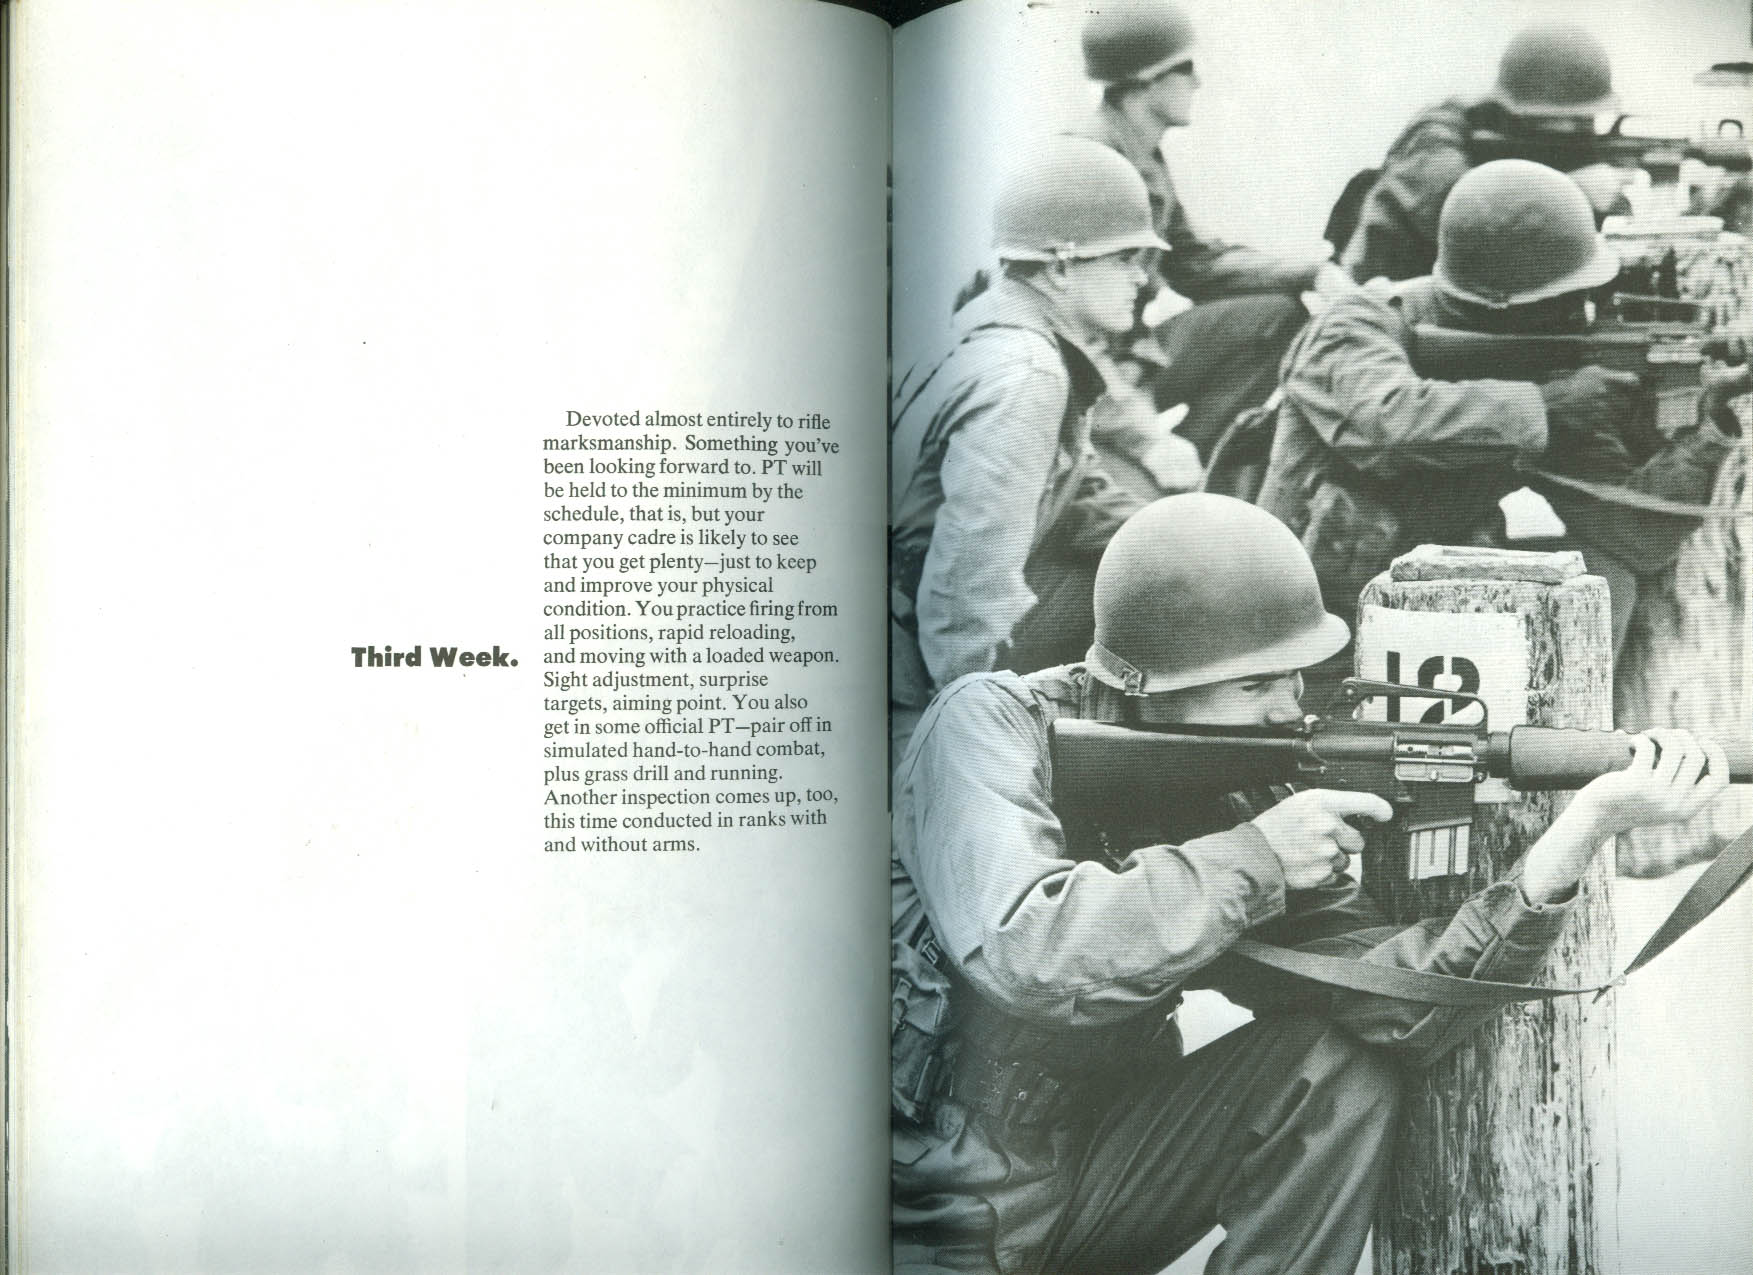 US Army The 8-Week Challenge recruitment brochure 1971